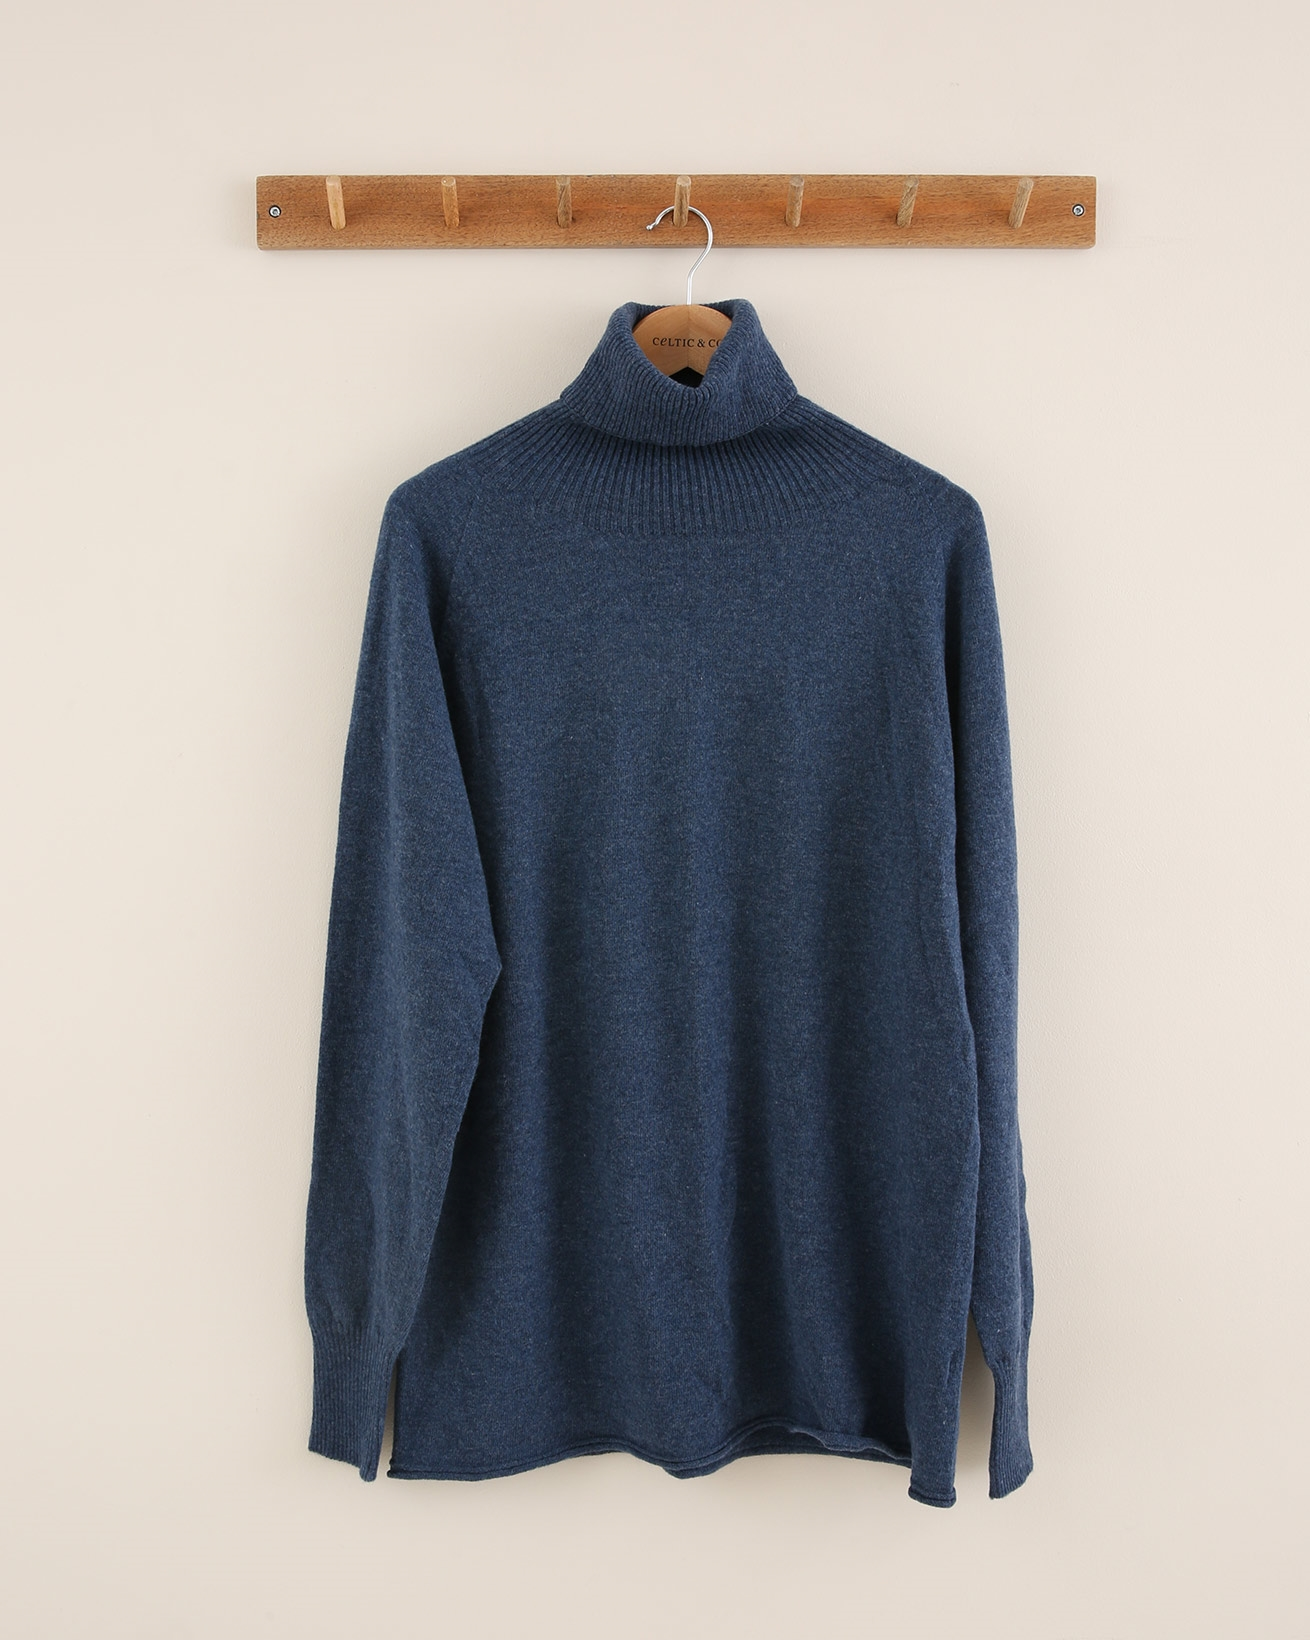 Geelong slouch roll neck - Size Small - Denim - 1702